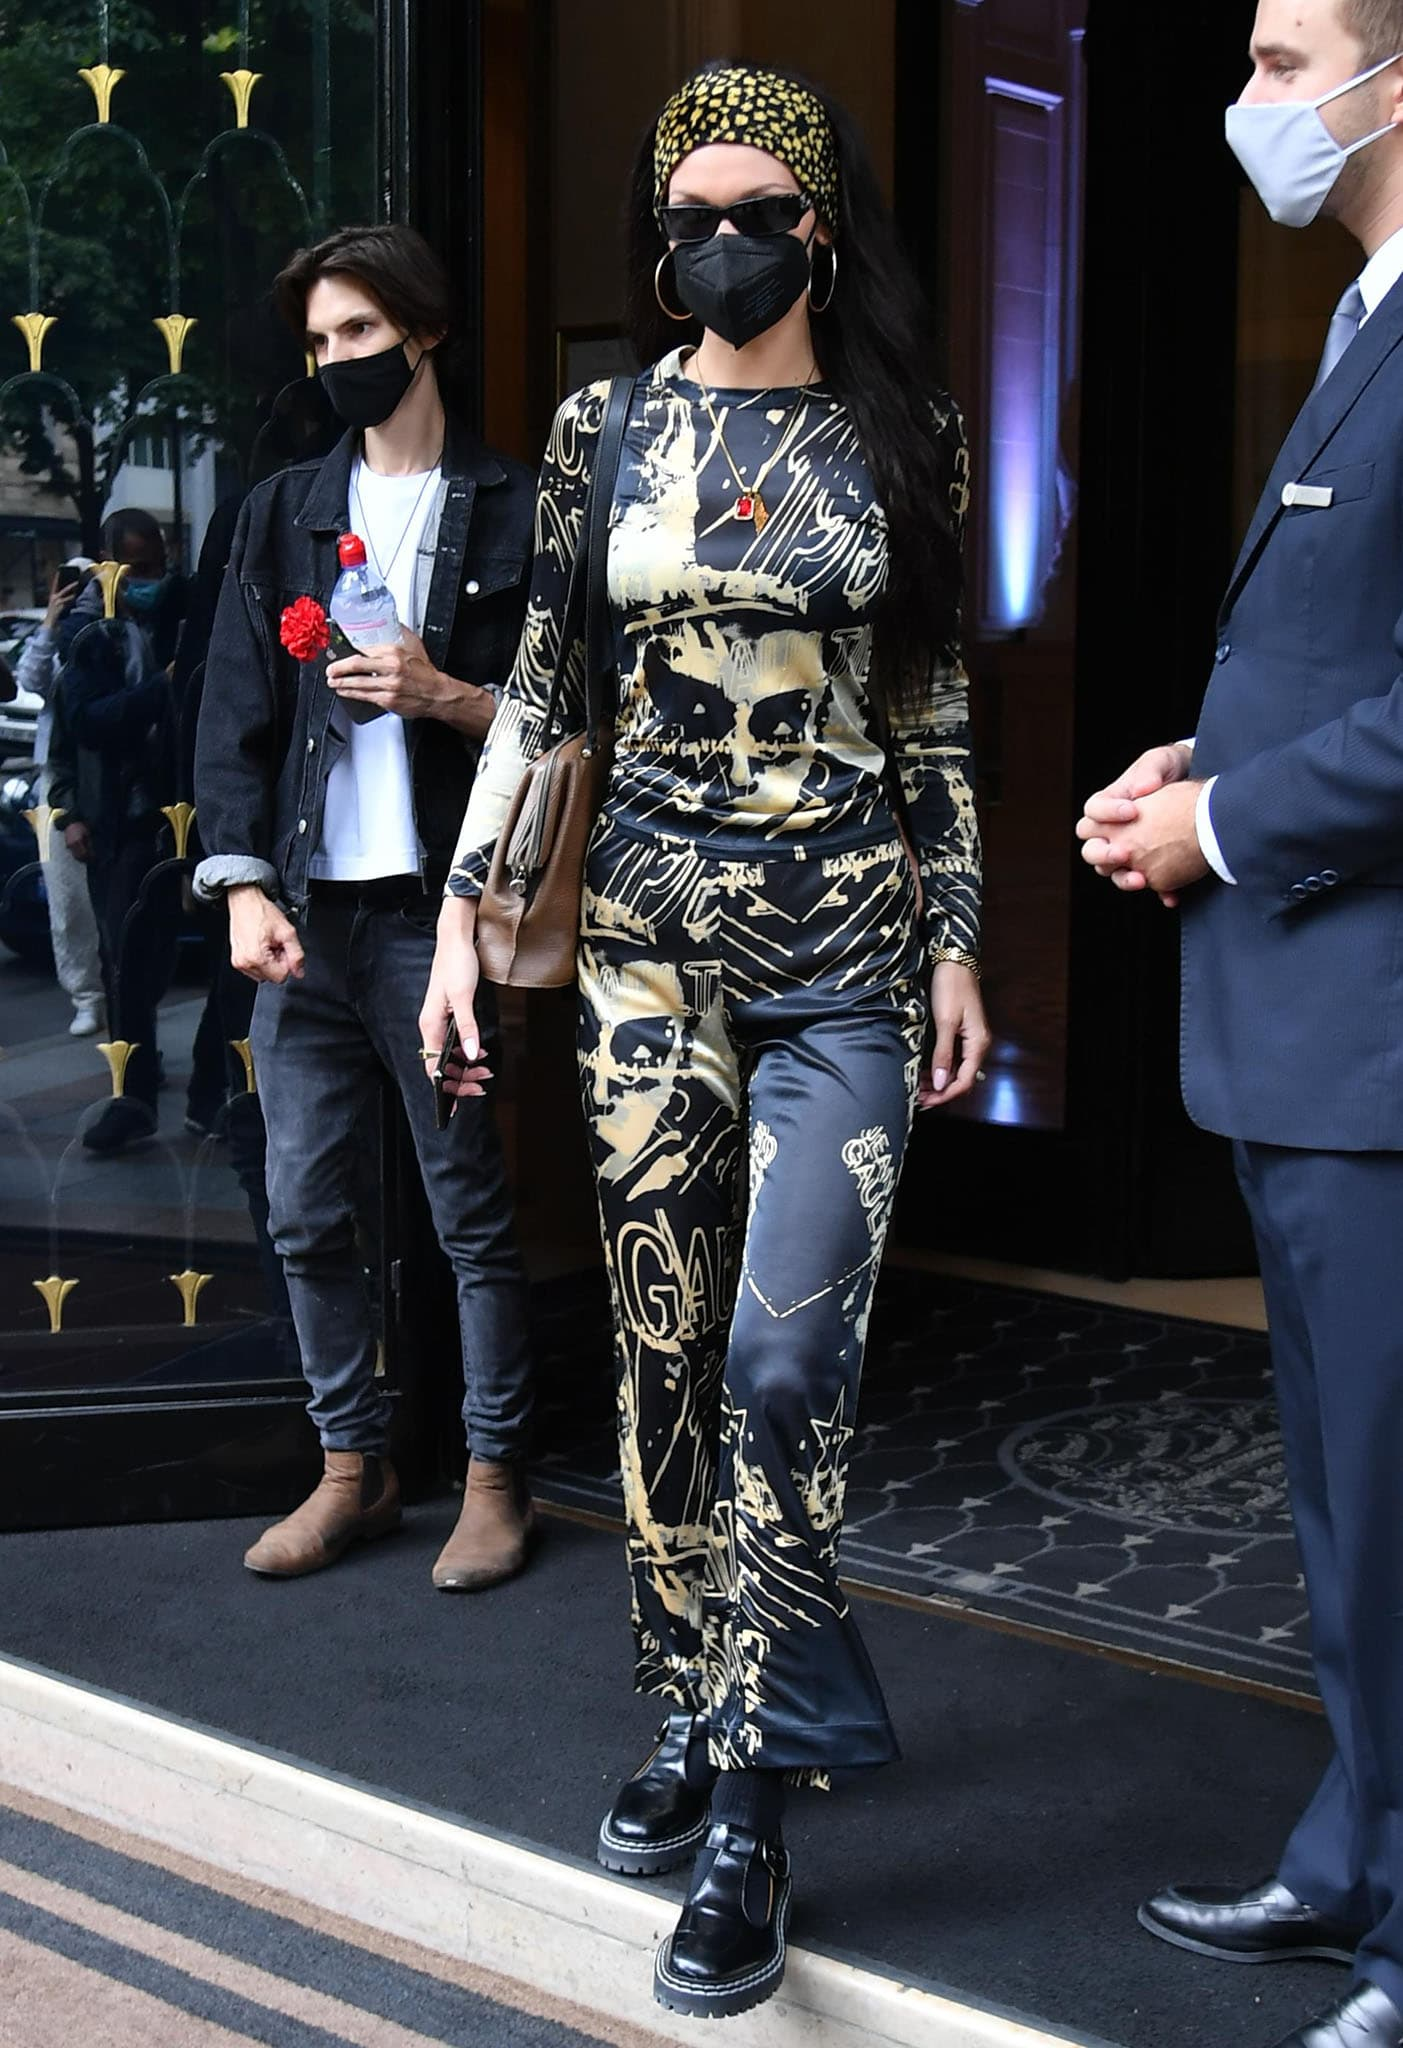 Bella Hadid leaving Royal Monceau Hotel in Jean-Paul Gaultier long-sleeved top and matching pants with Proenza Schouler Mary Janes on July 7, 2021